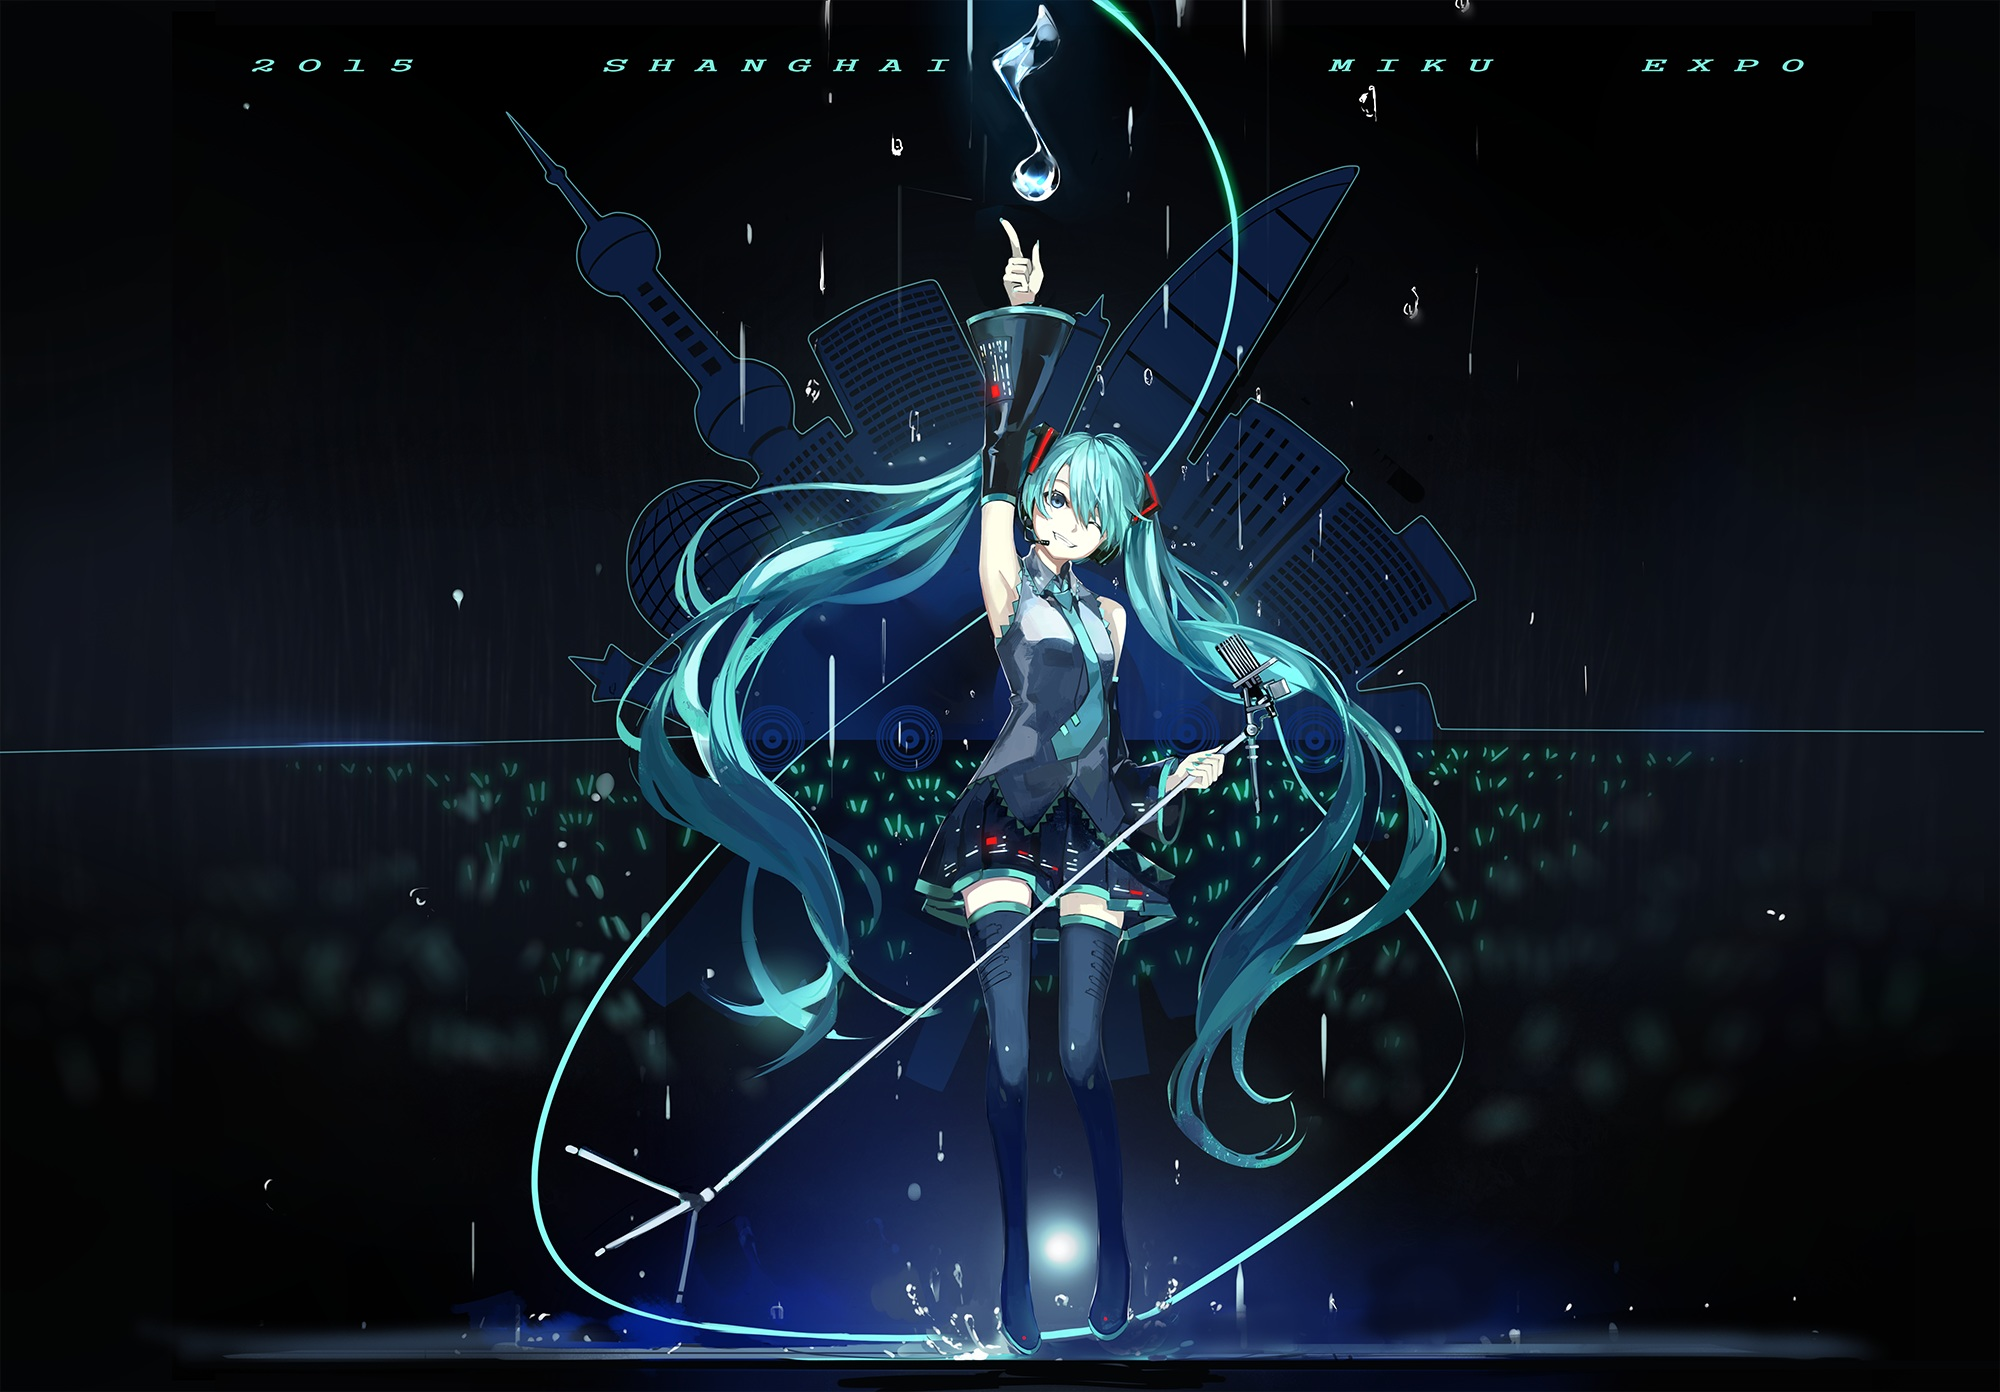 Wallpaper Of The Week Hatsune Miku 39 Randomness Thing